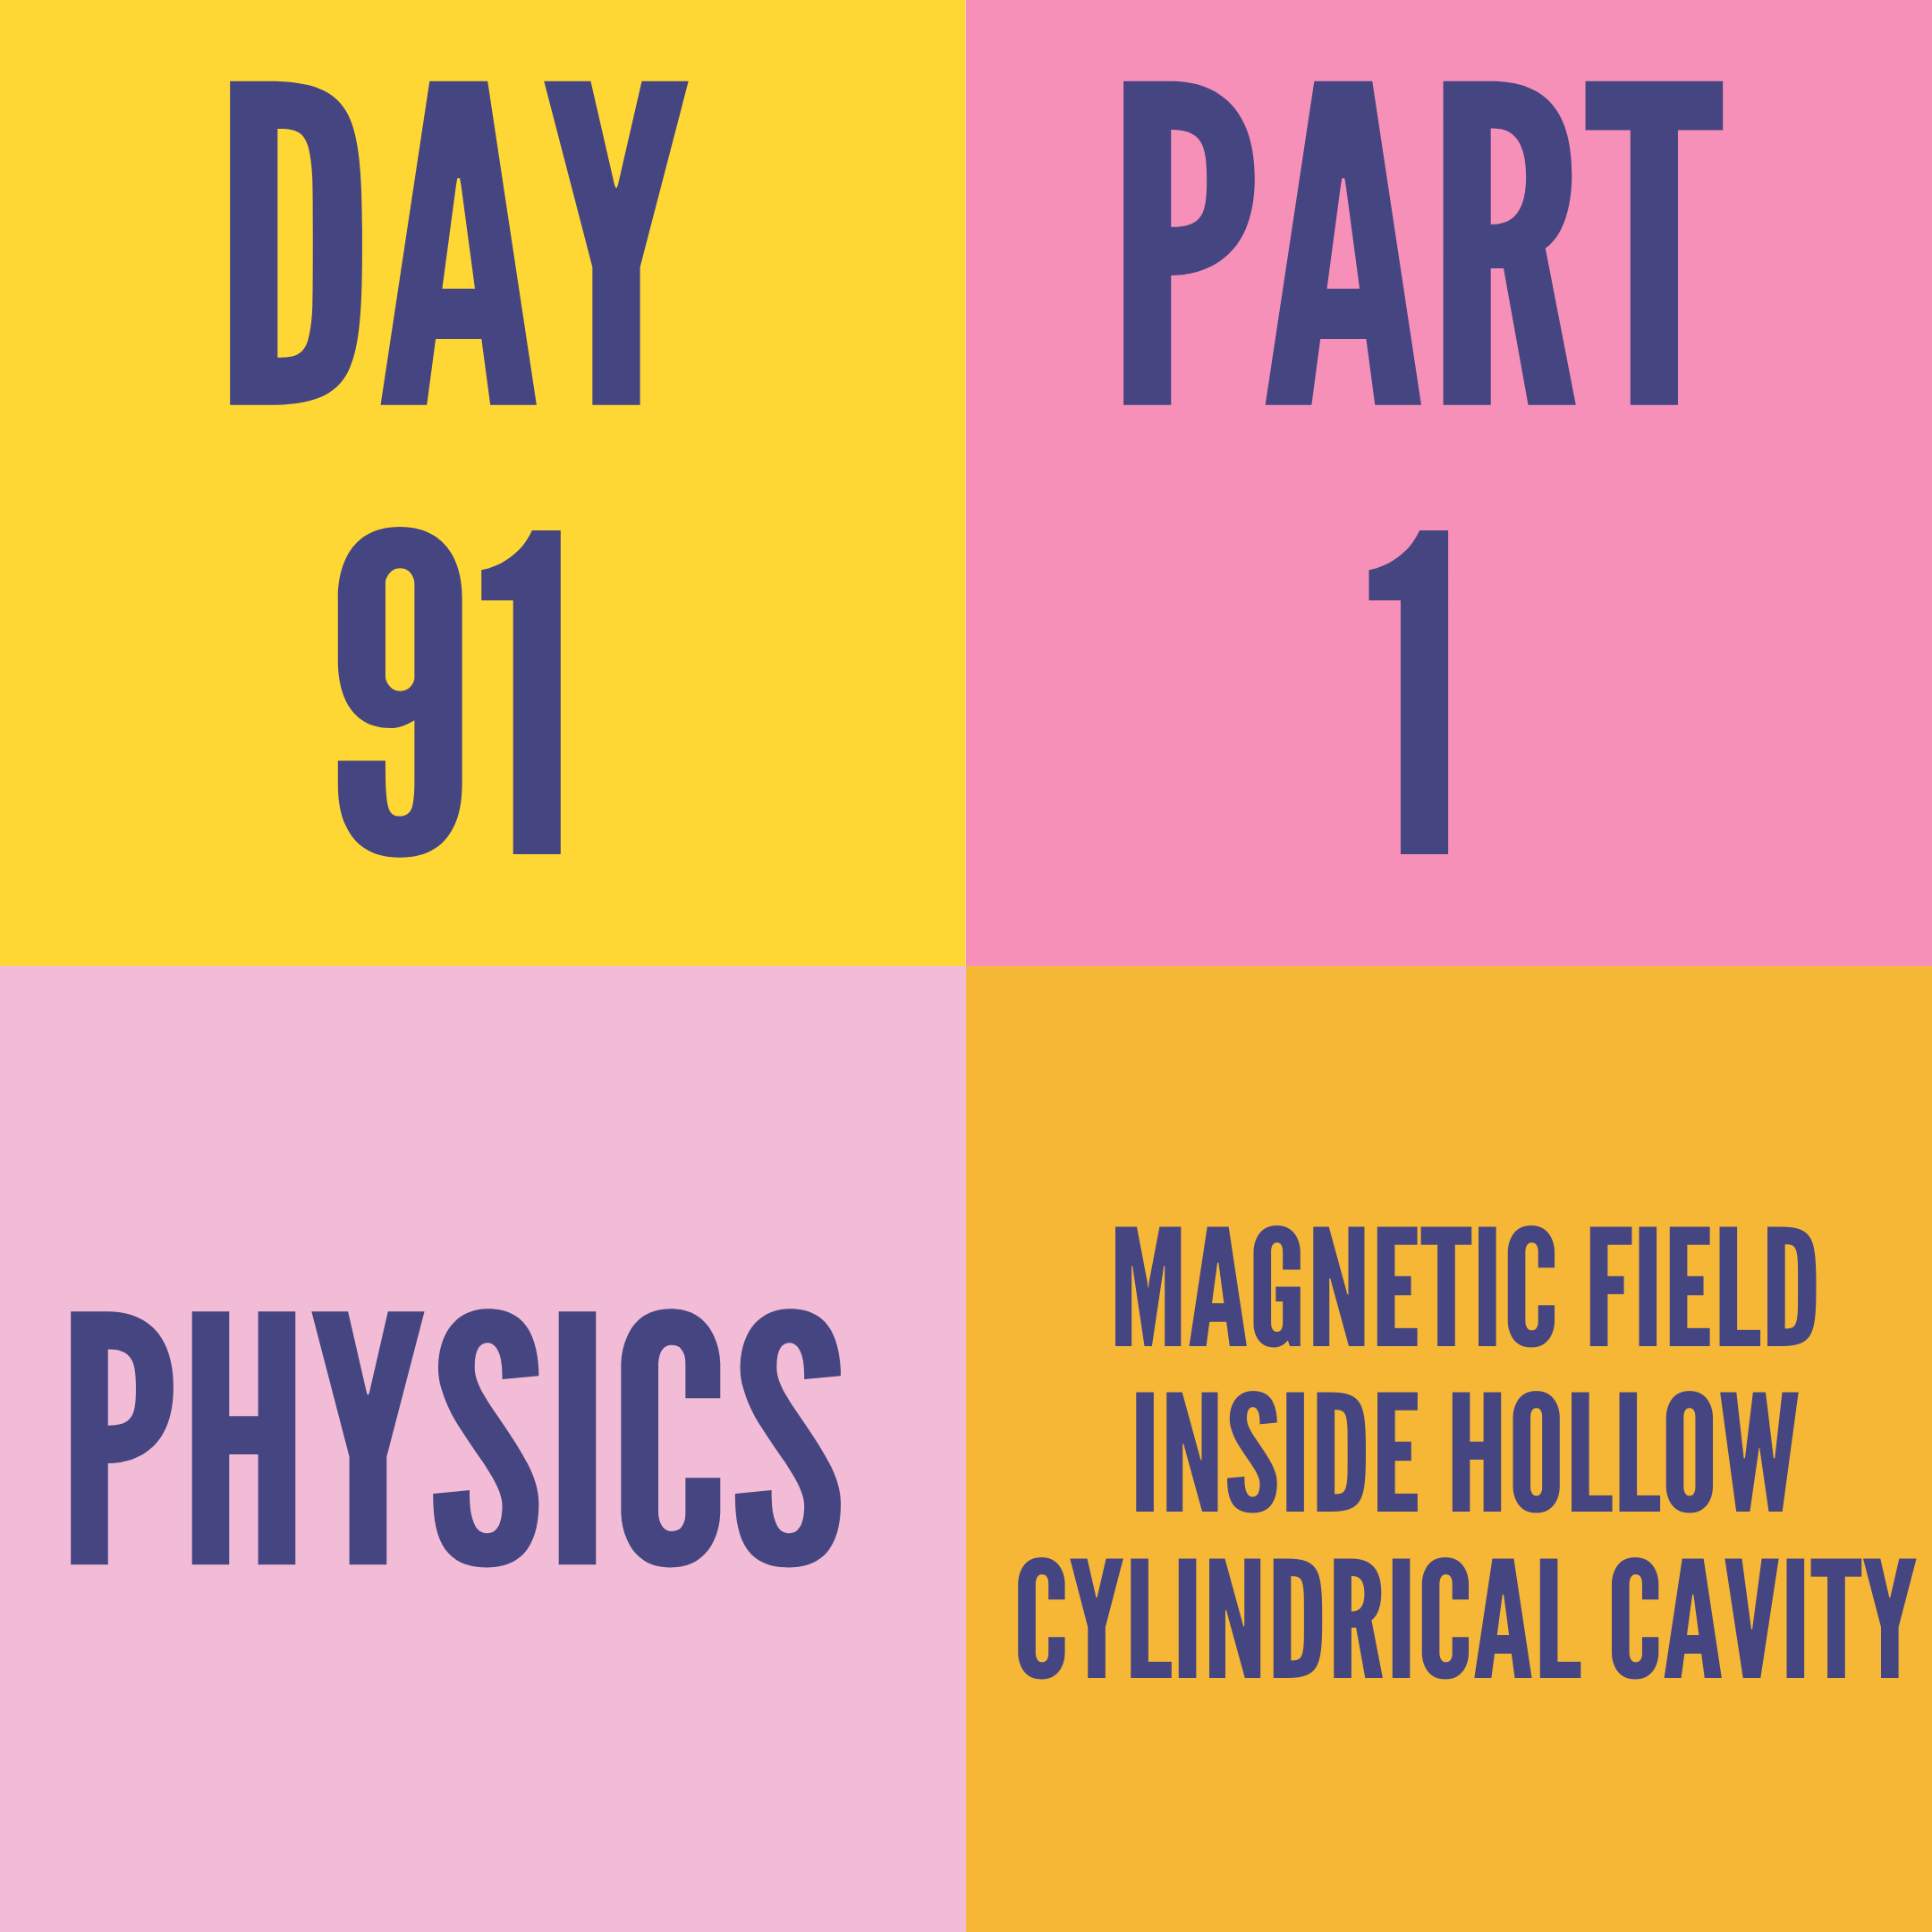 DAY-91 PART-1 MAGNETIC FIELD INSIDE HOLLOW CYLINDRICAL CAVITY